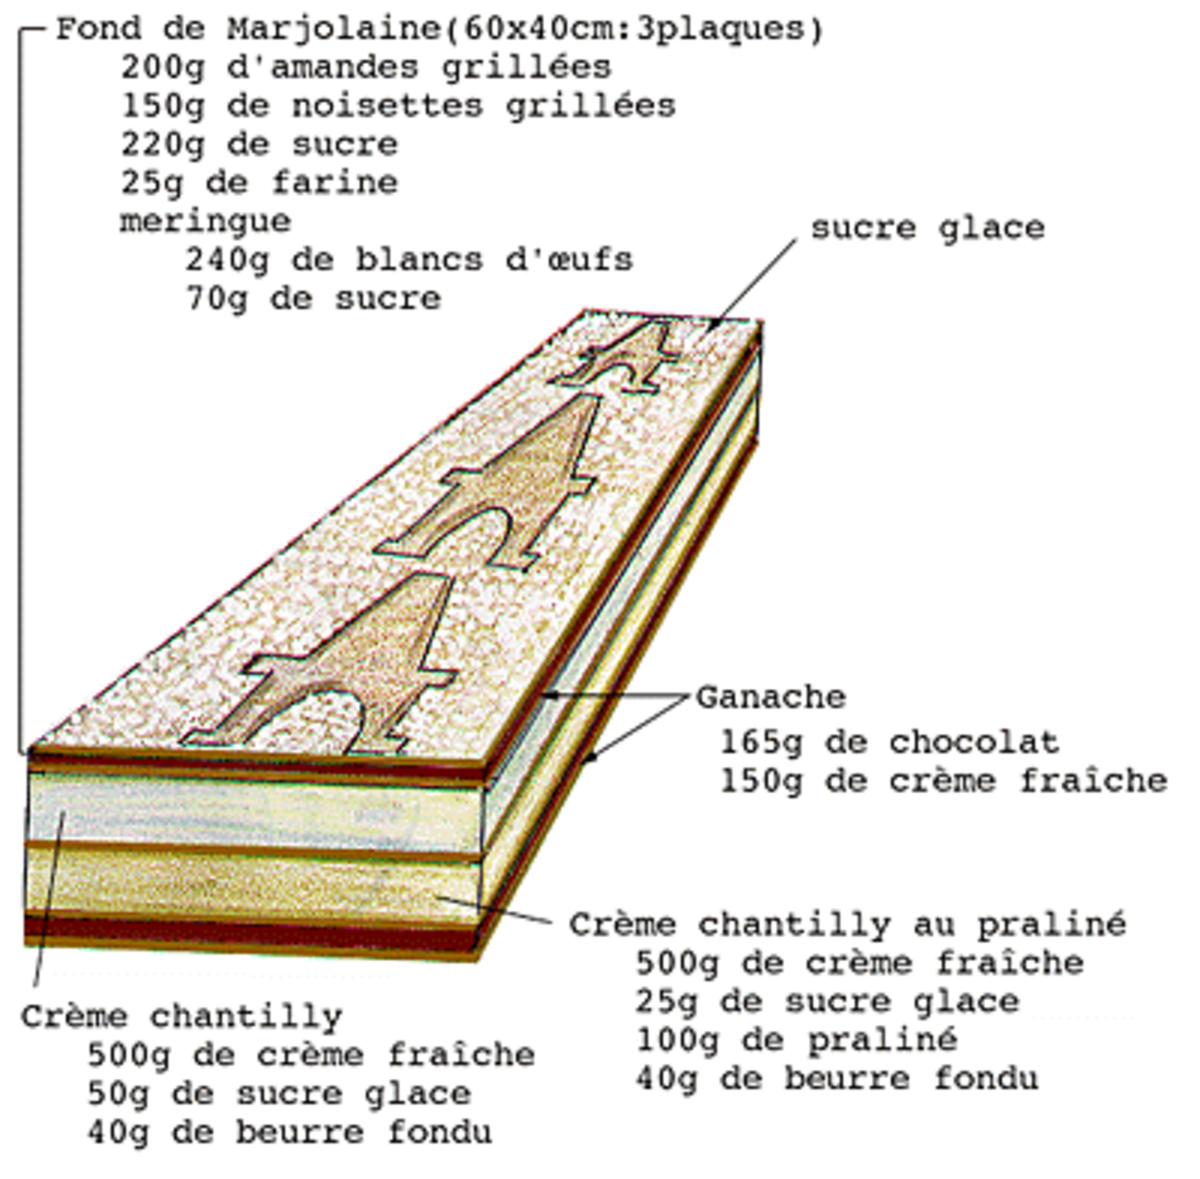 Template in French of how the Gâteau Marjolaine was decorated for the Restaurant de la Pyramide.